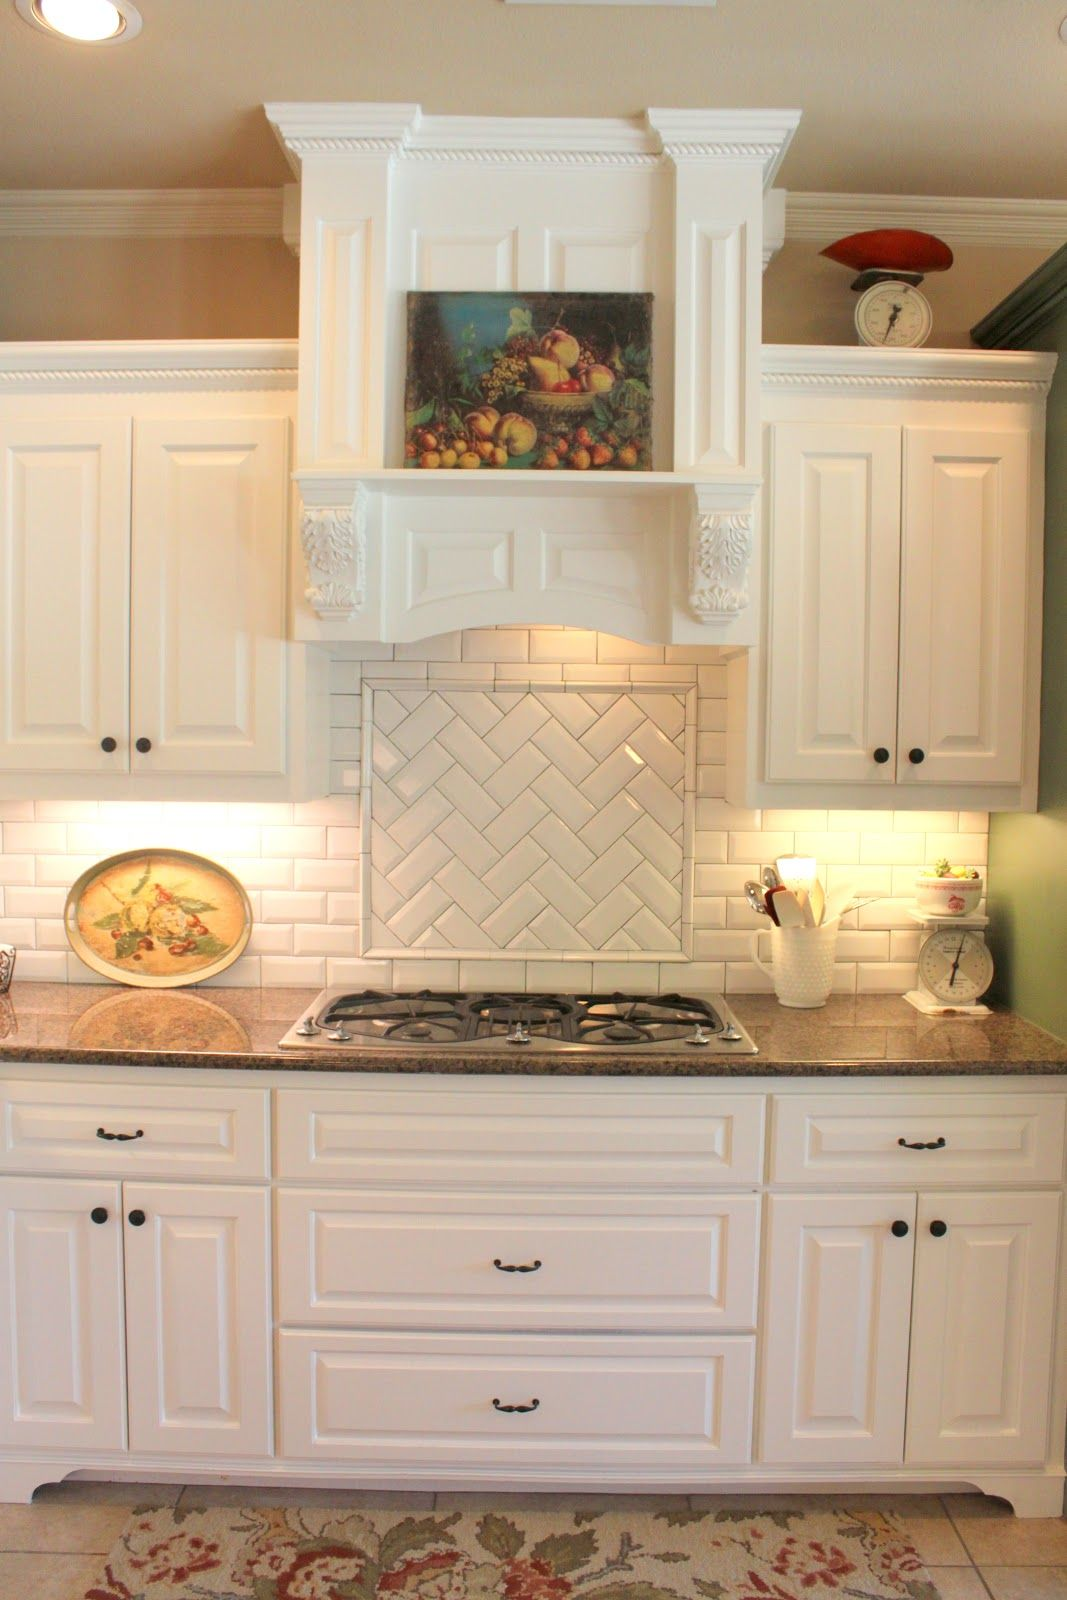 Backsplash Accent Ideas Framed Square Catchy Herringbone Backsplash Accent Tiling